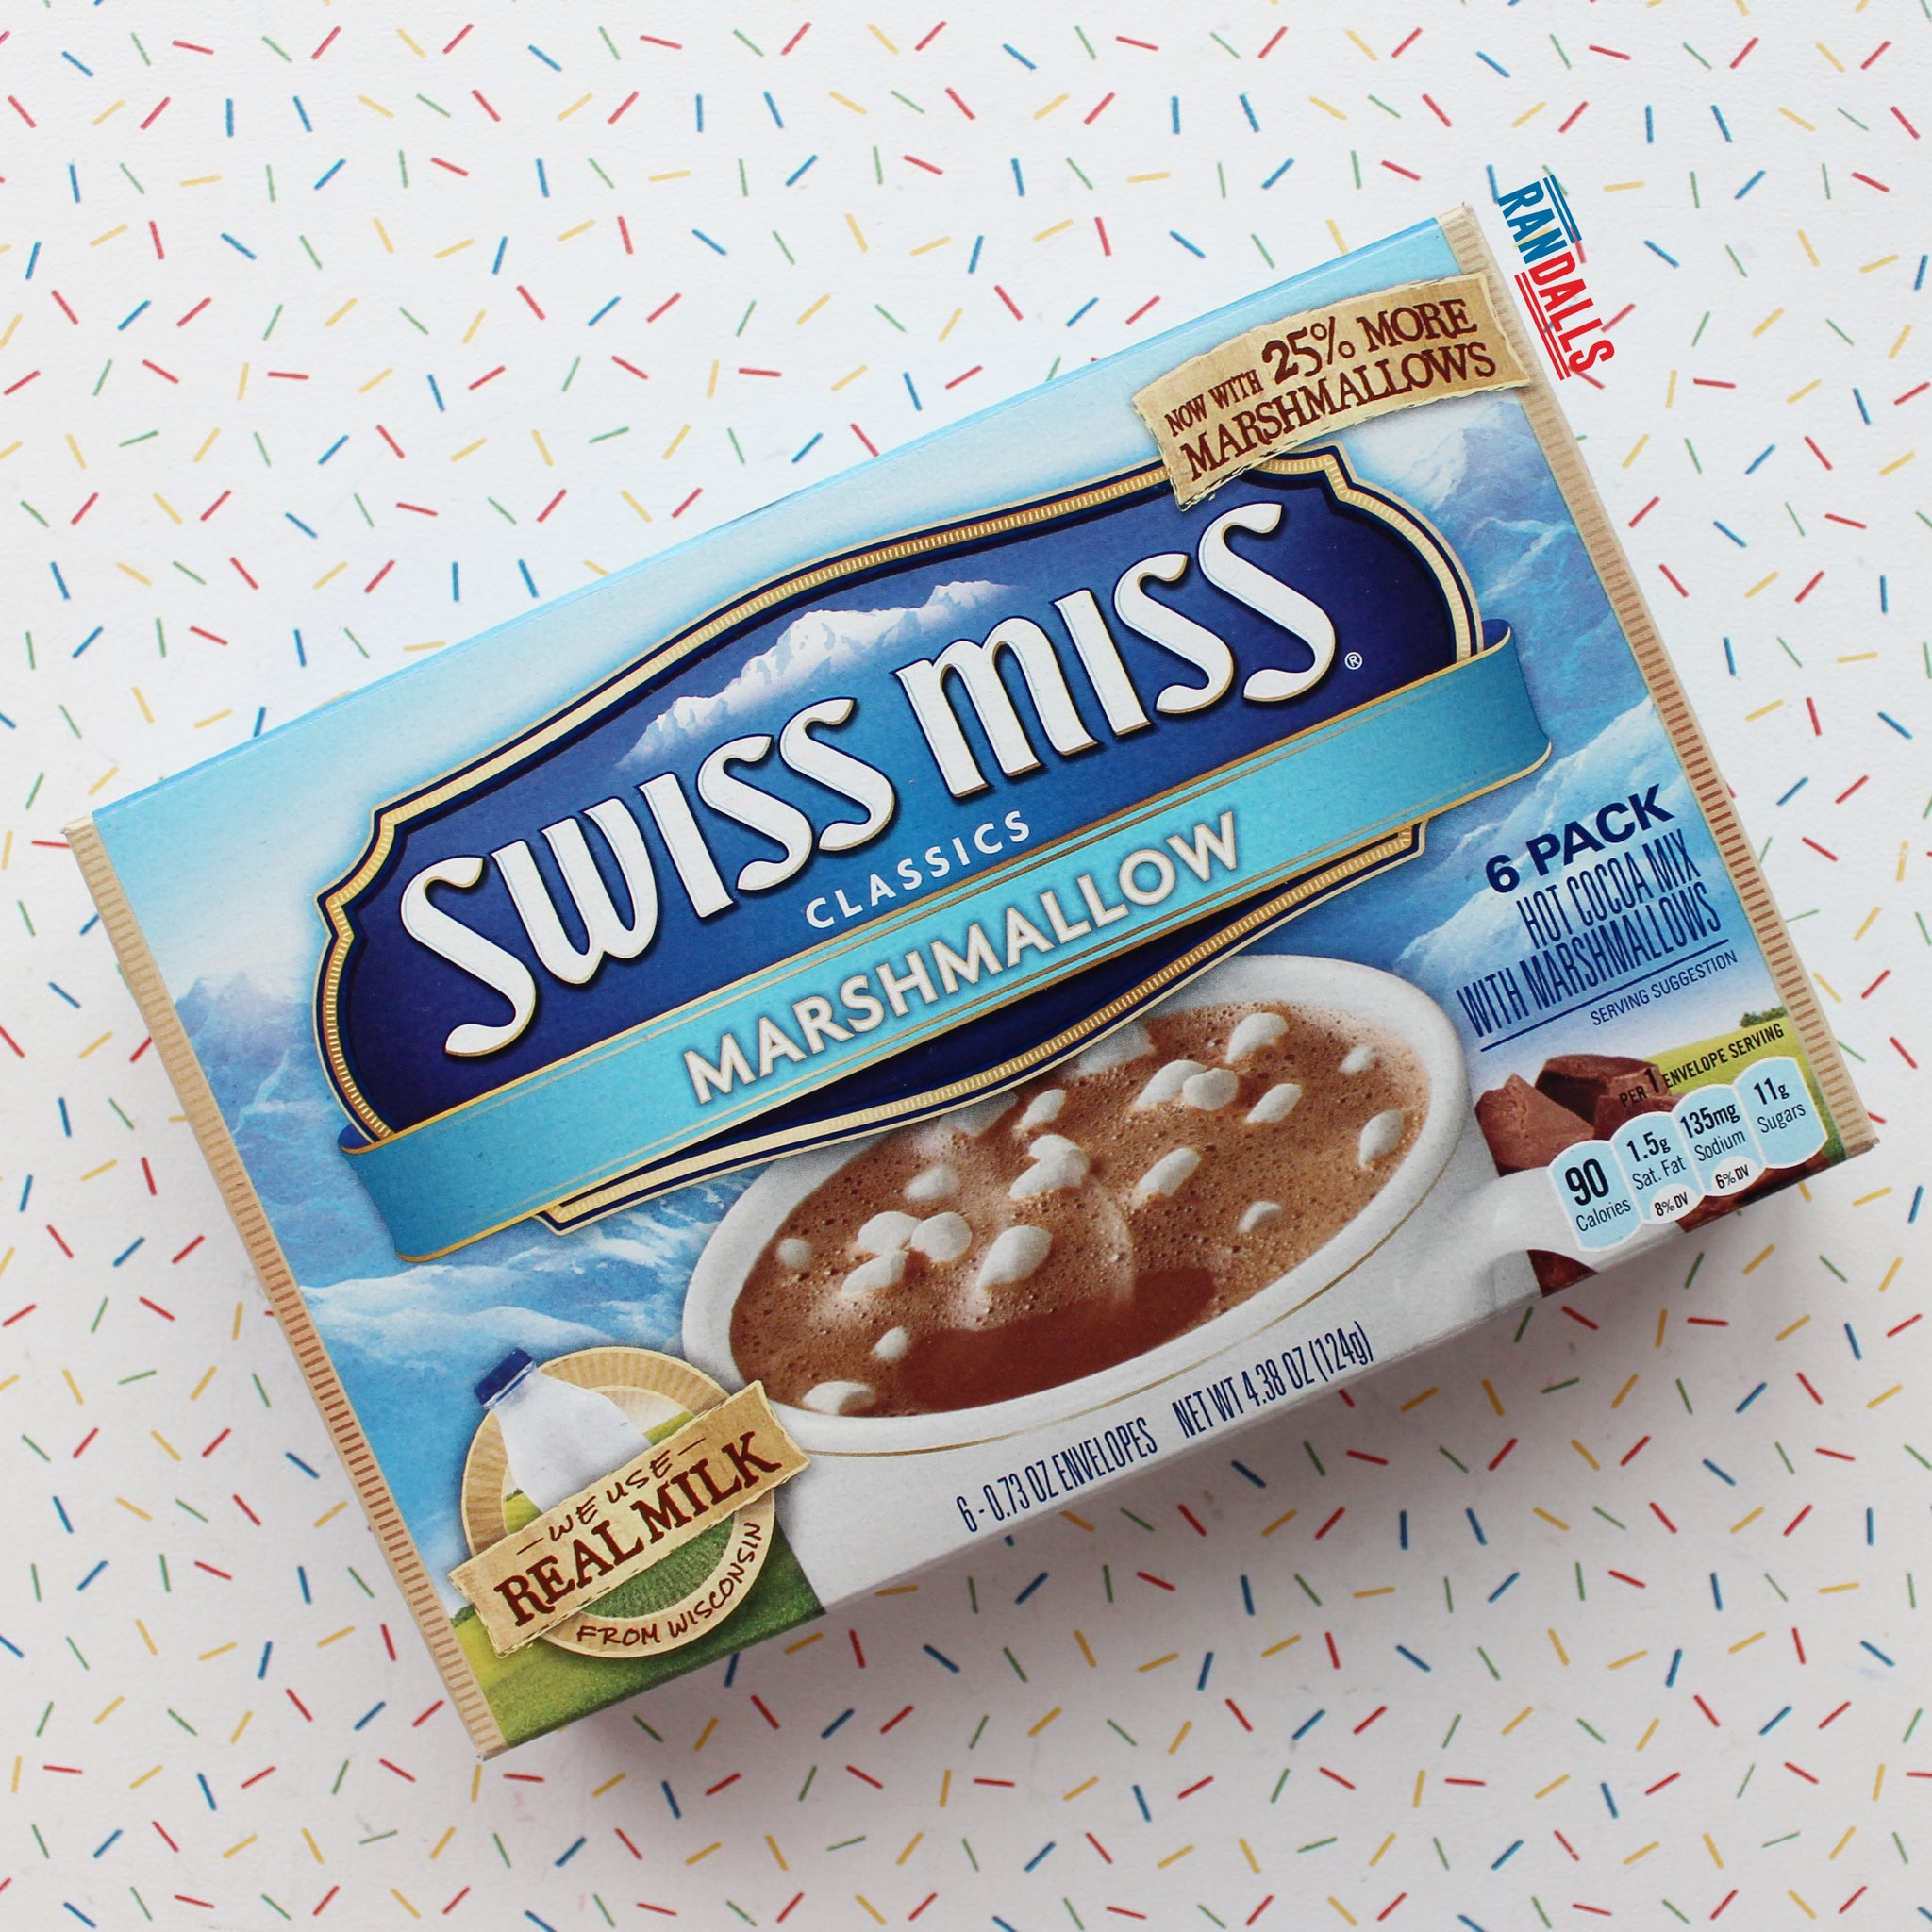 SWISS MISS MARSHMALLOW HOT COCOA MIX